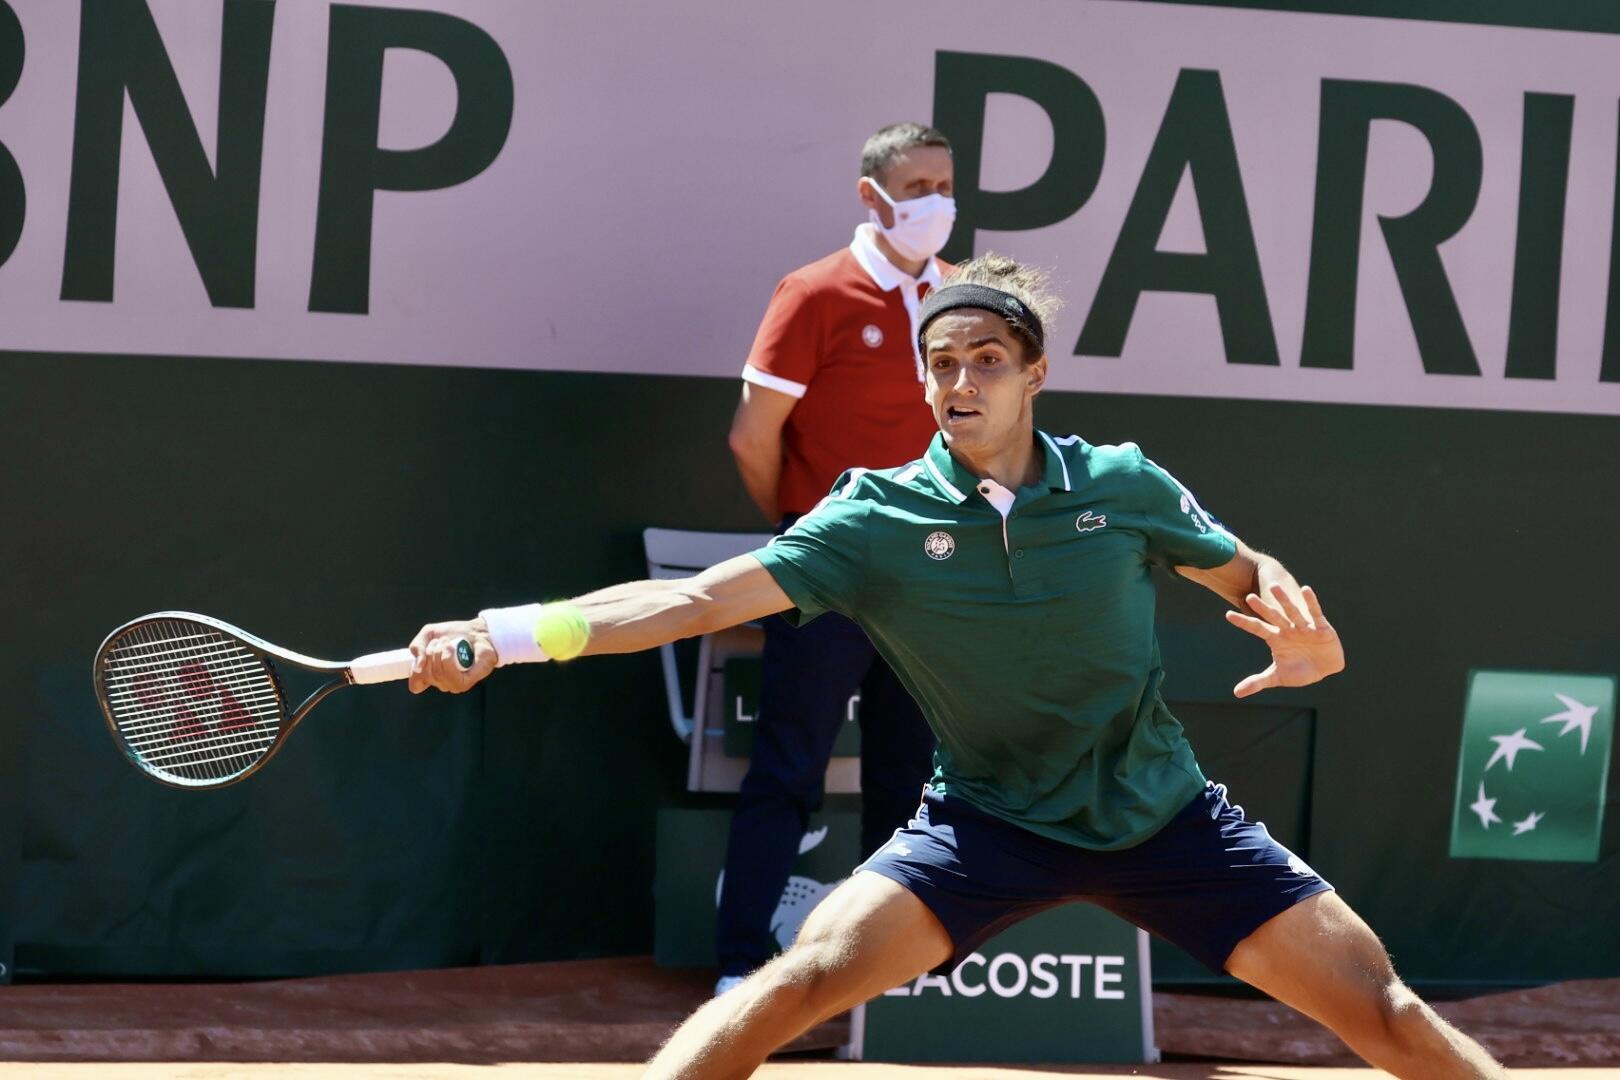 Pierre-Hugues Herbert came close to the feat.